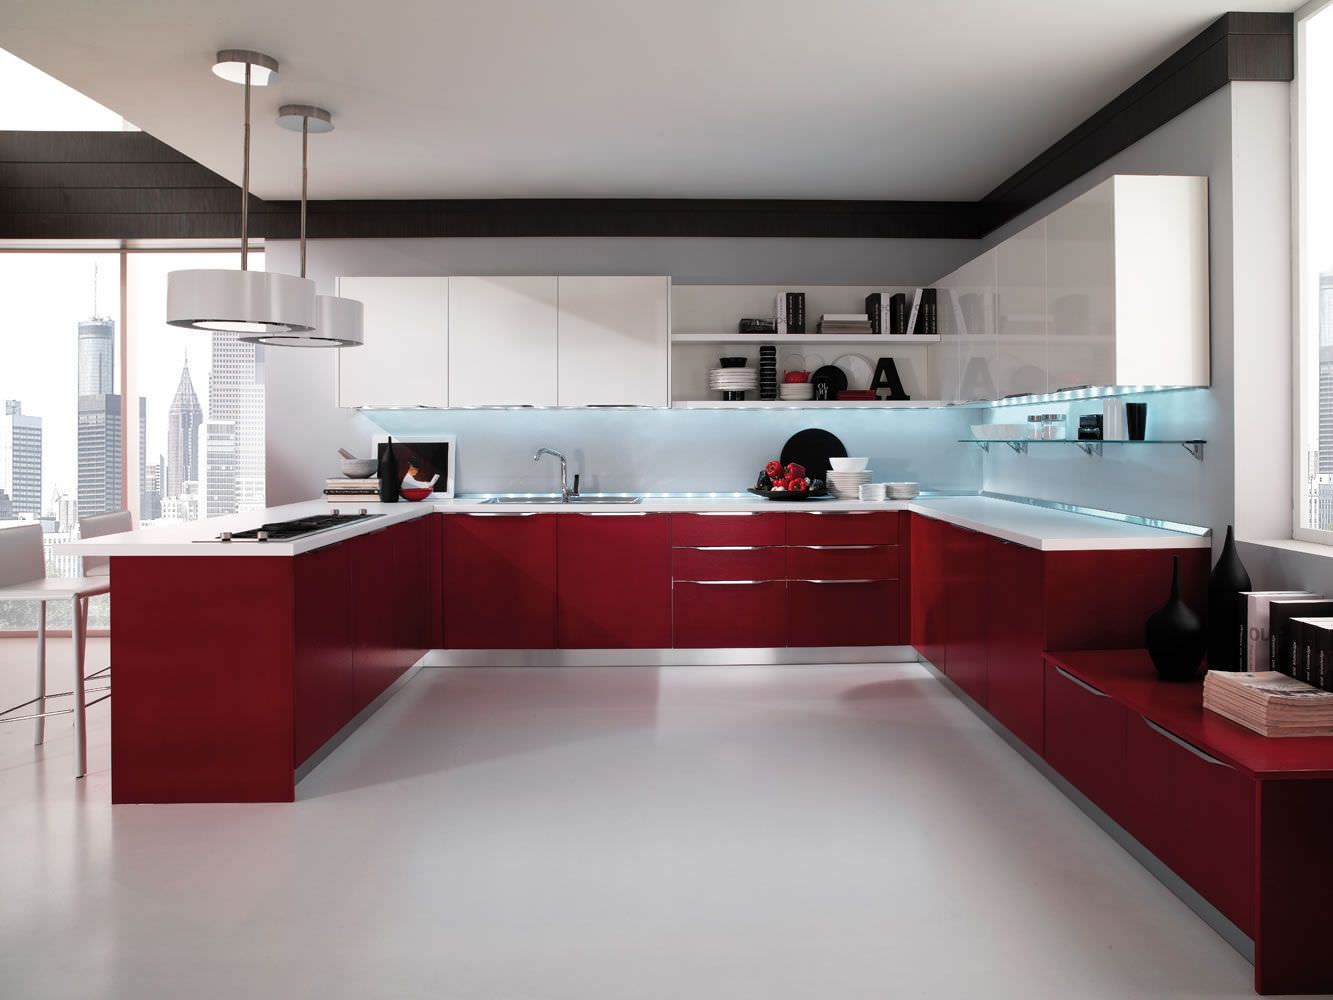 High Gloss Acrylic Kitchen Cabinets Pantry For Contemporary Lacquered Airone Torchetti